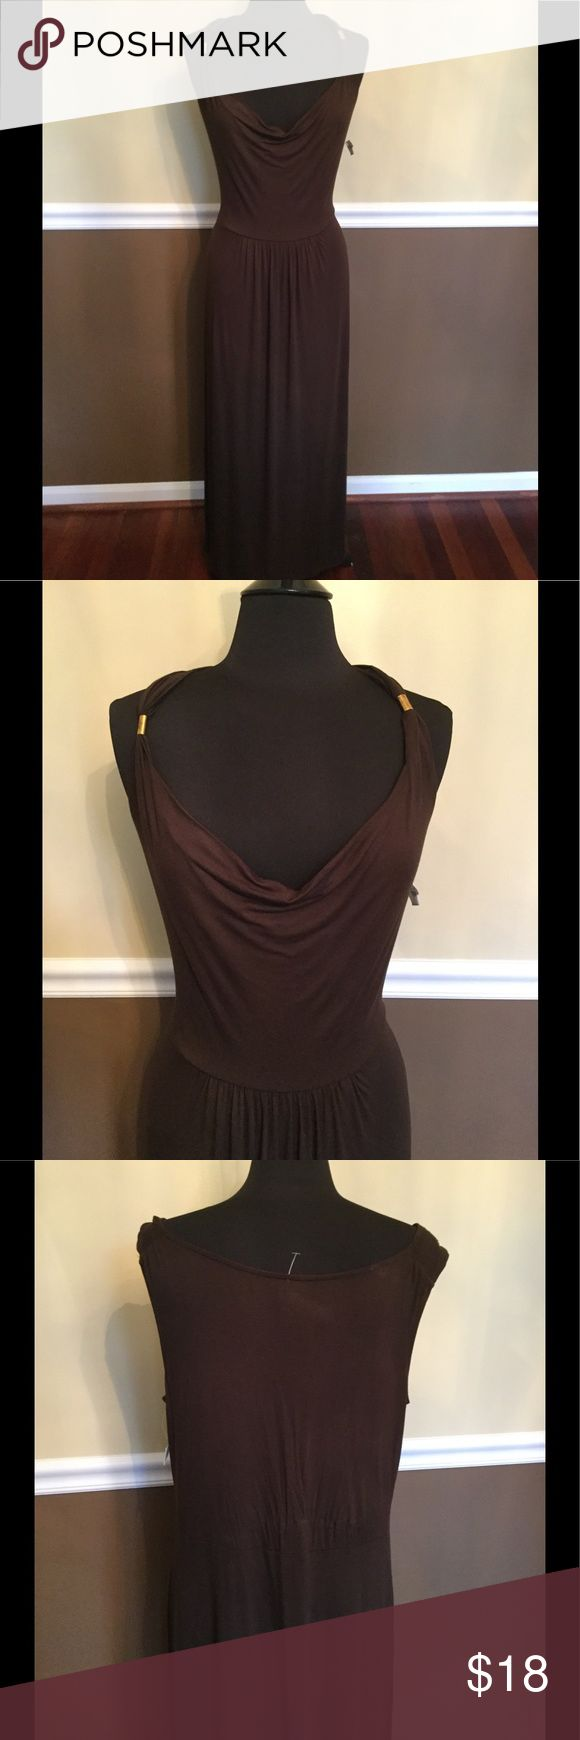 ANA A New Approach Chocolate Brown Maxi Sundress ANA A New Approach NWT Chocolate Brown Maxi Sundress Extra Large ANA Dresses Maxi